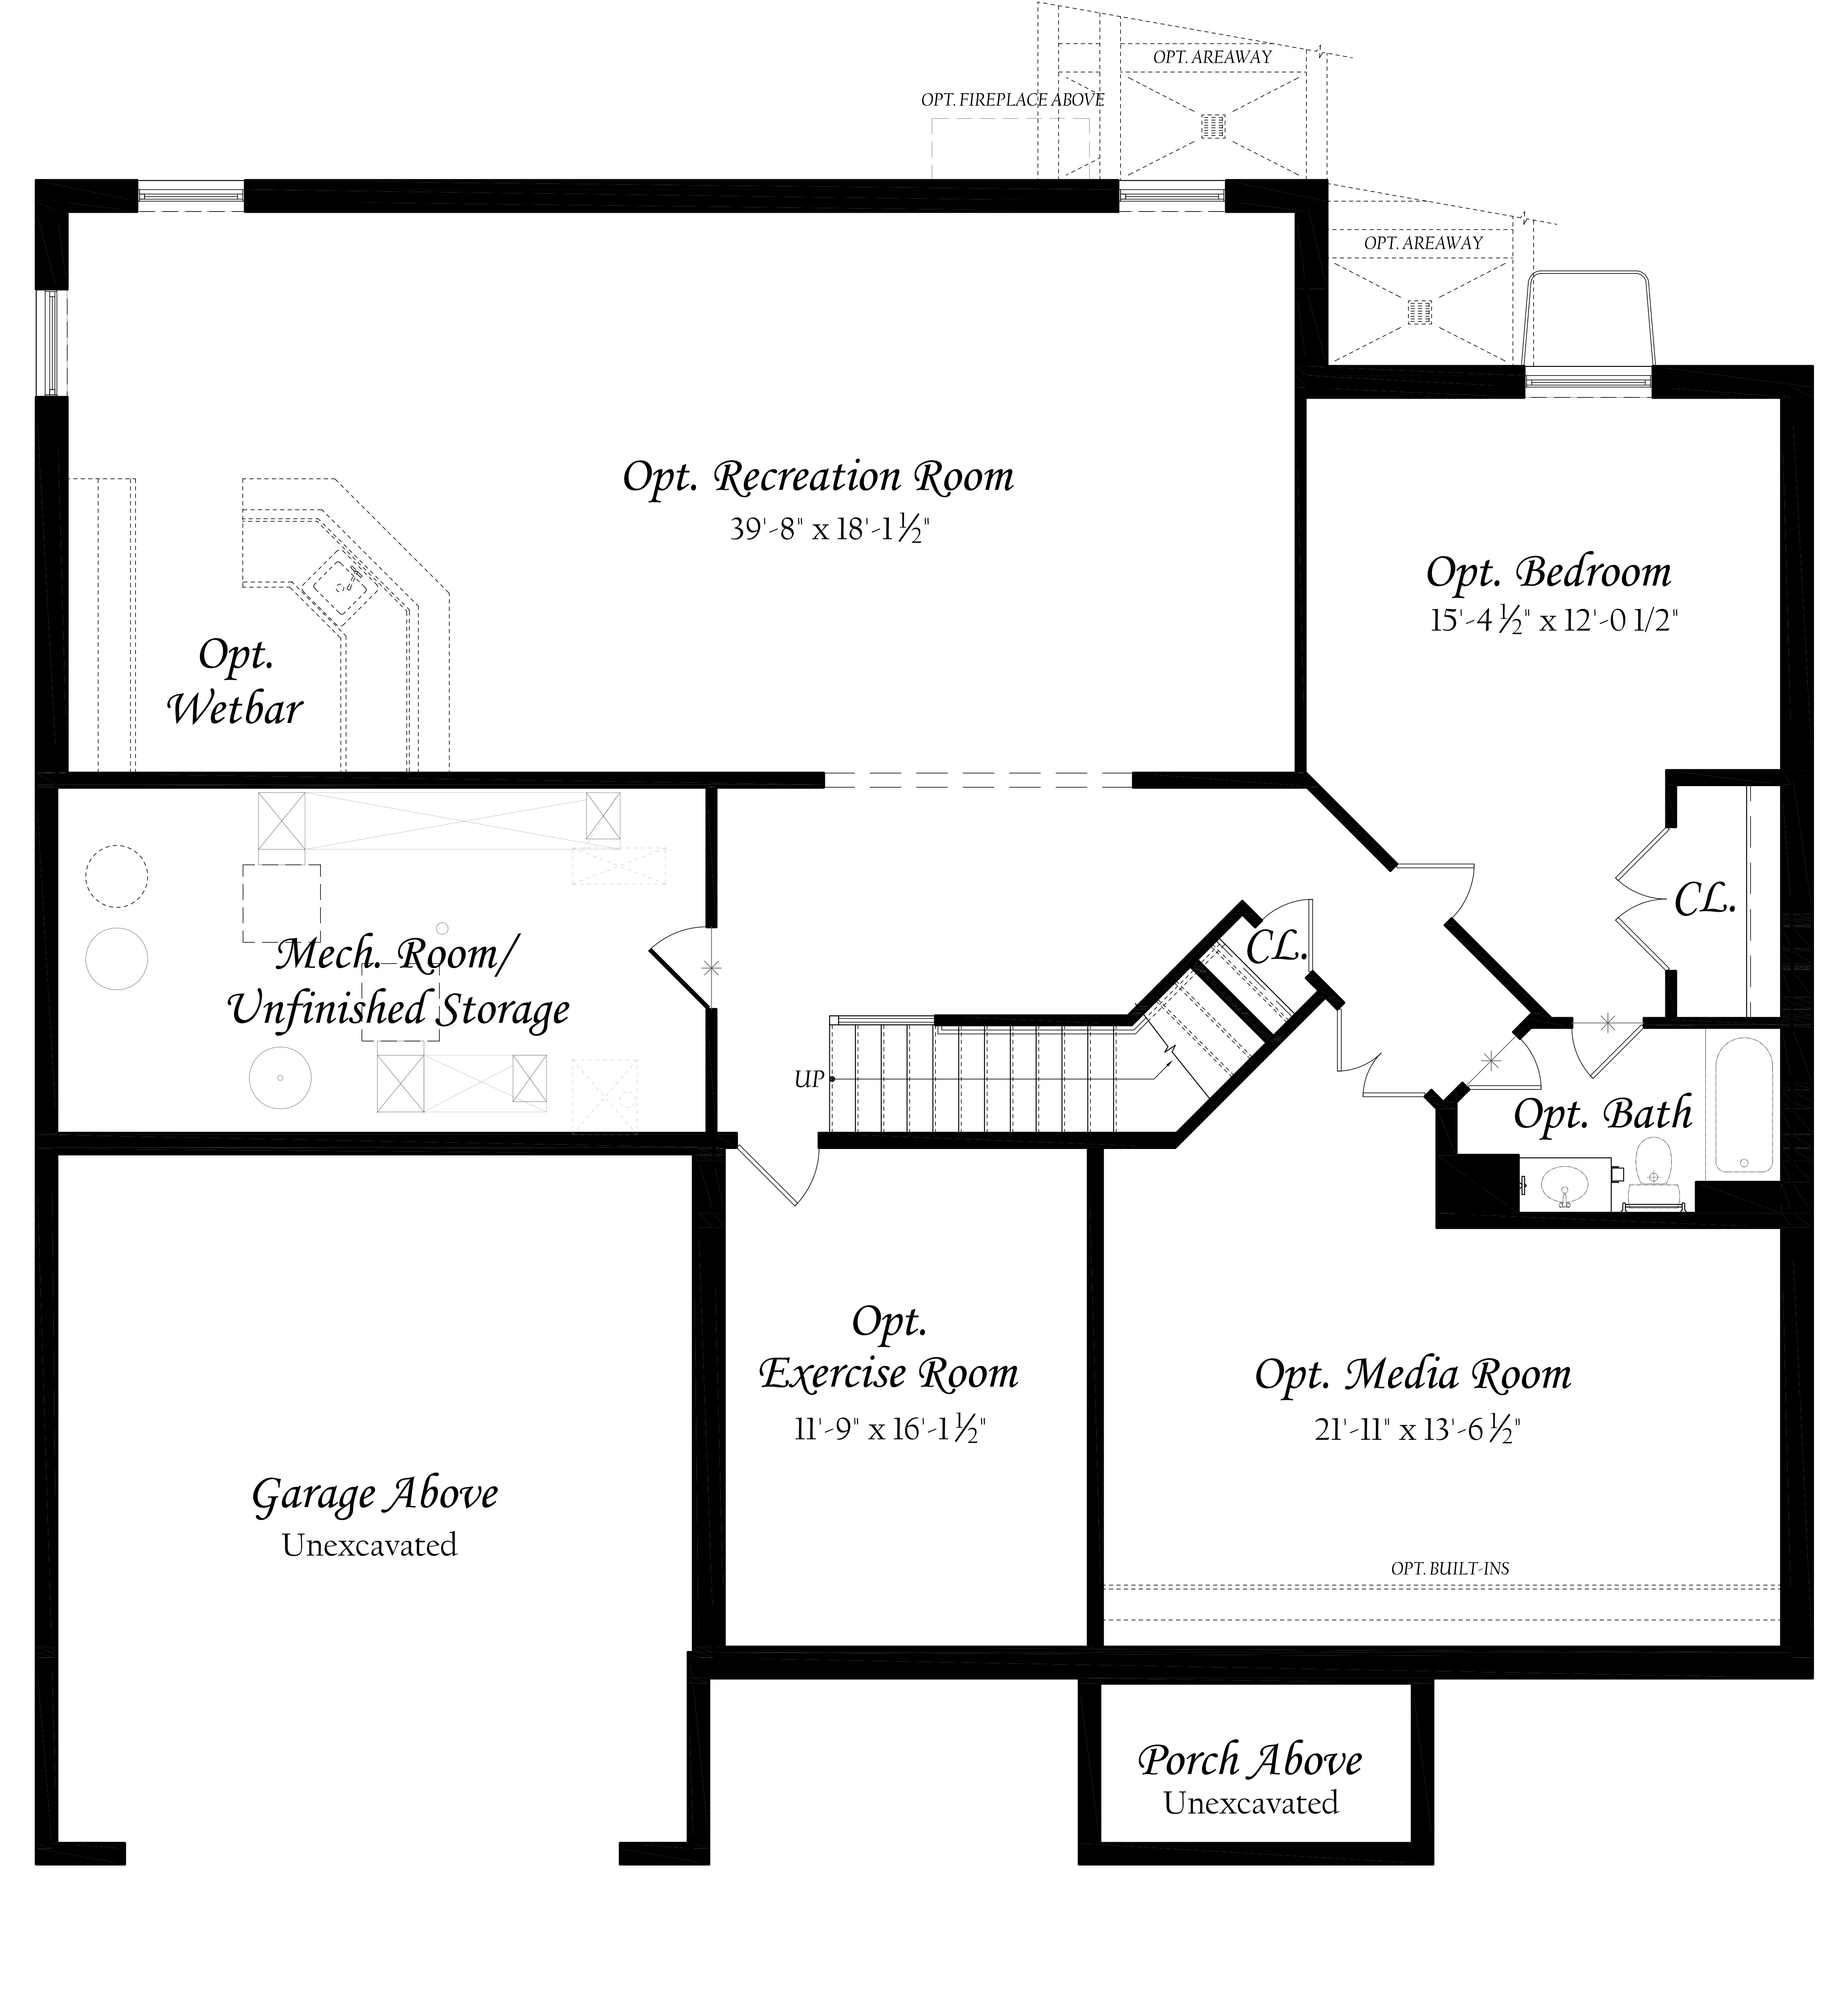 6-22-18 Willow Grove II 3x0 - Master - Floor Plan - Elev A - Lower Level